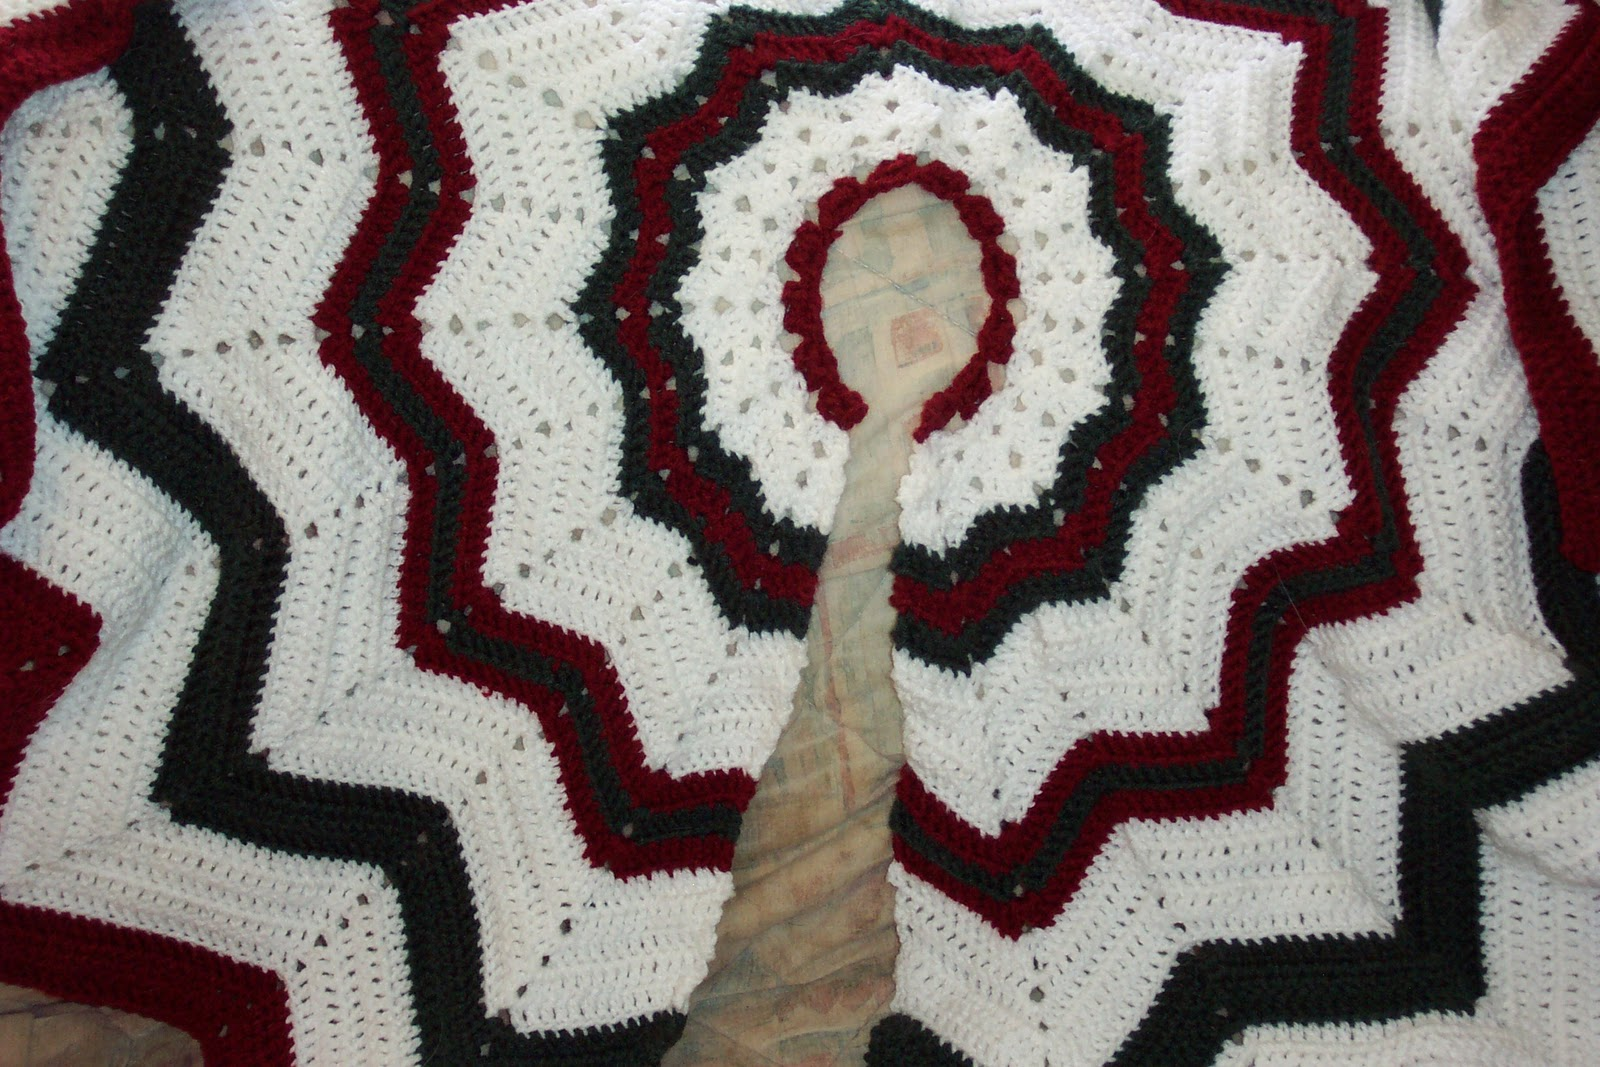 Free Crochet Pattern - Tree Skirt - Crafts - Free Craft Patterns